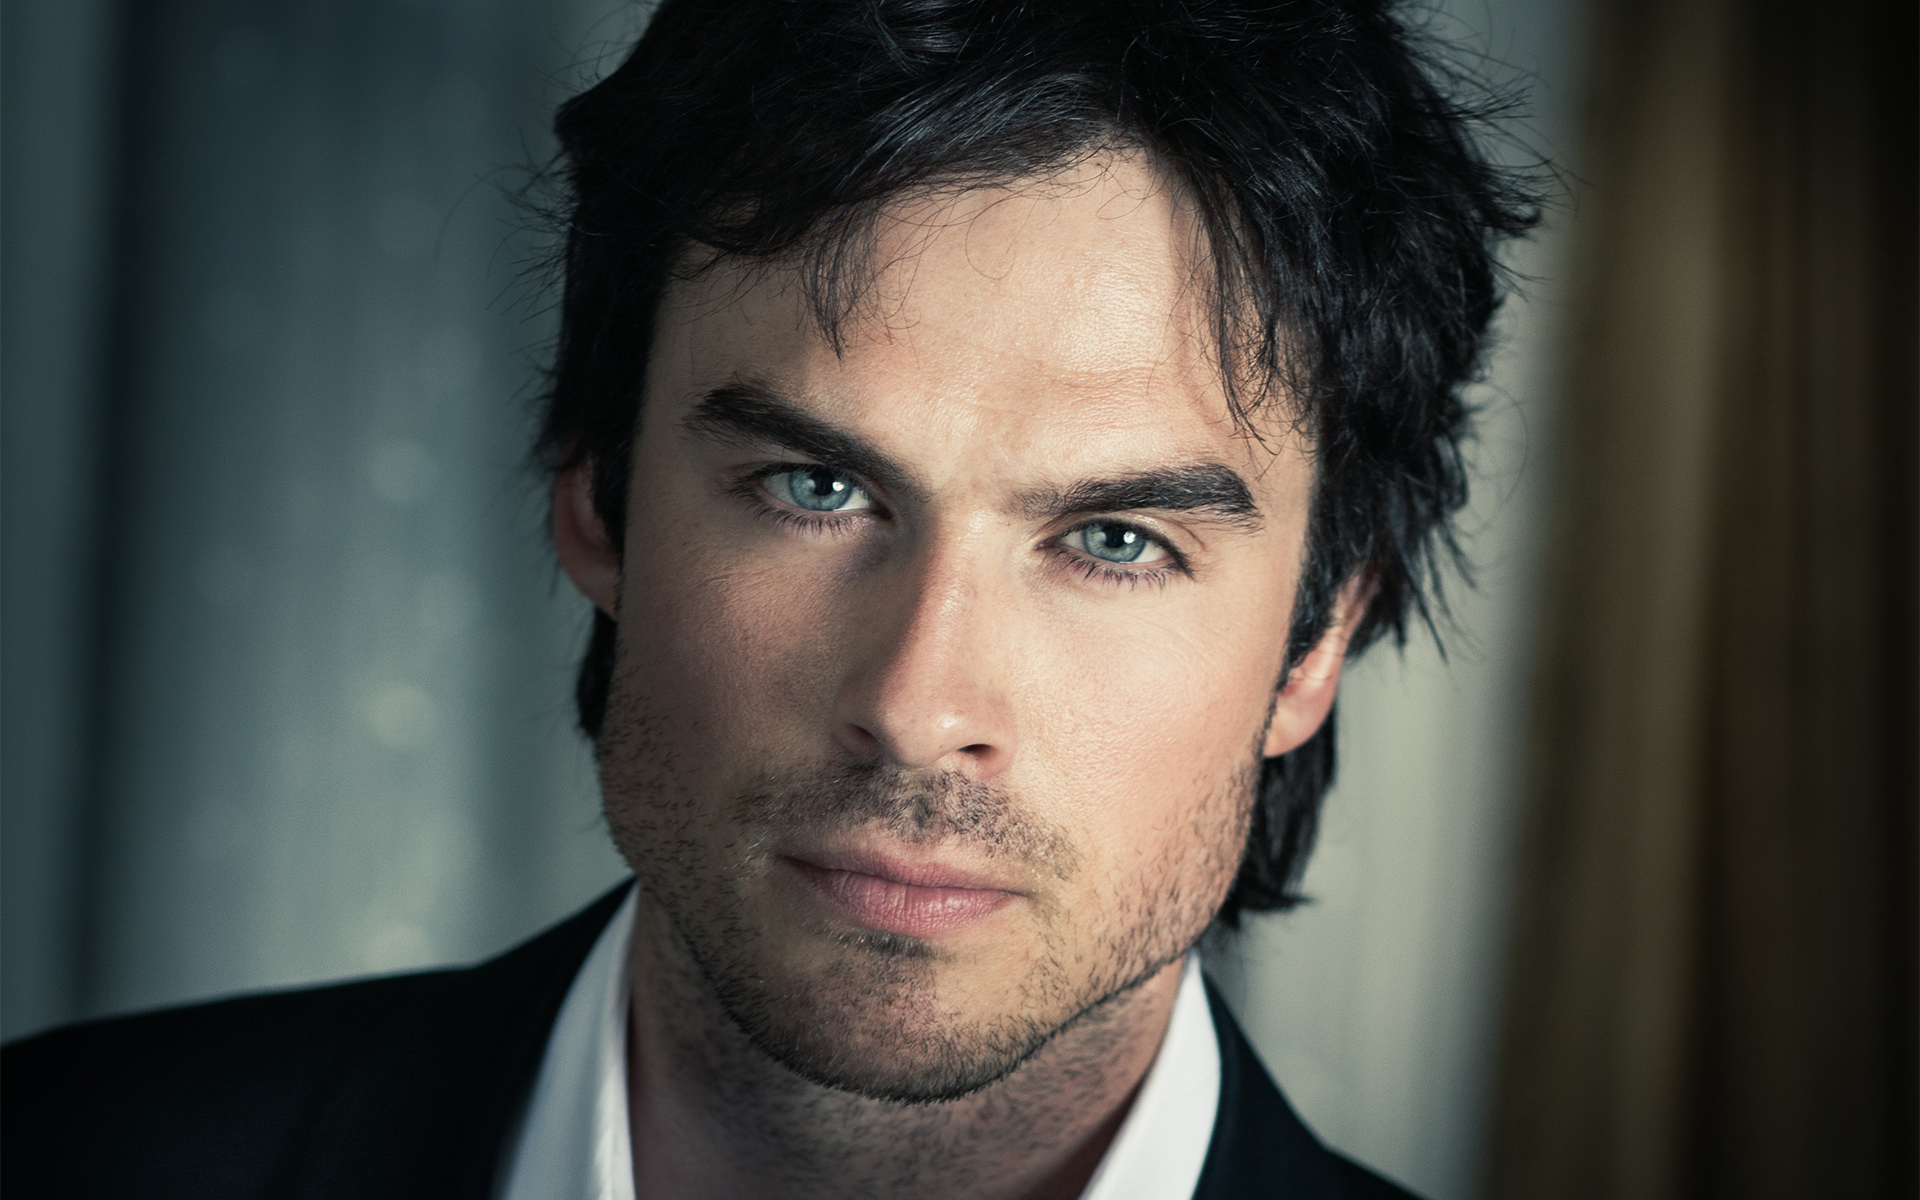 Ian Somerhalder Wallpaper For Laptop